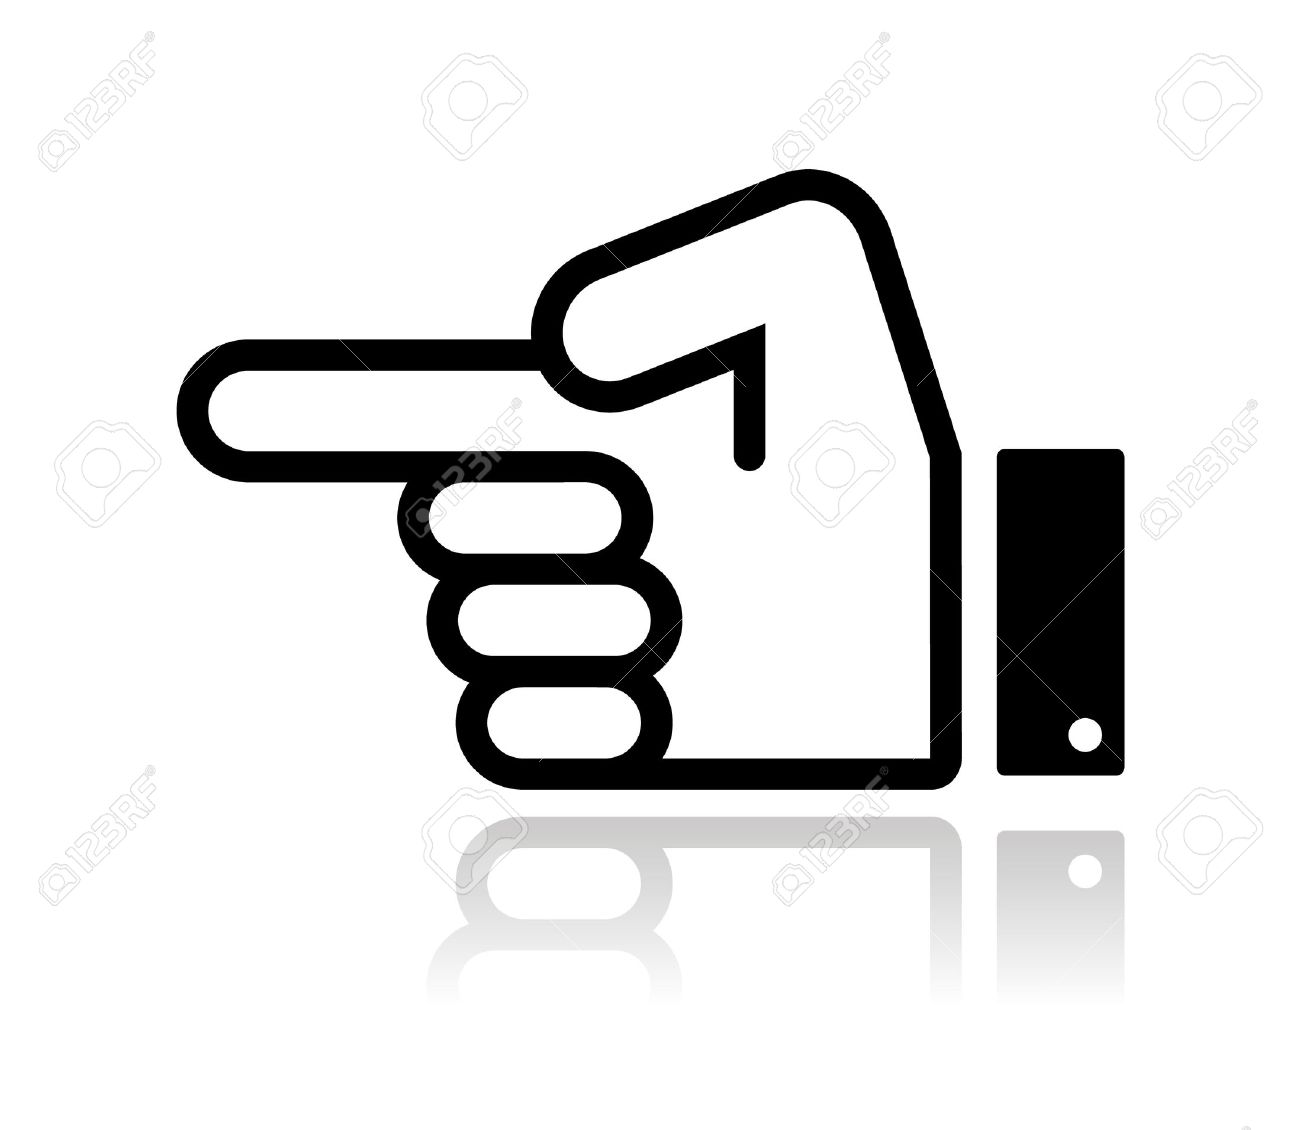 Pointing hand icon vector Stock Vector - 16059631